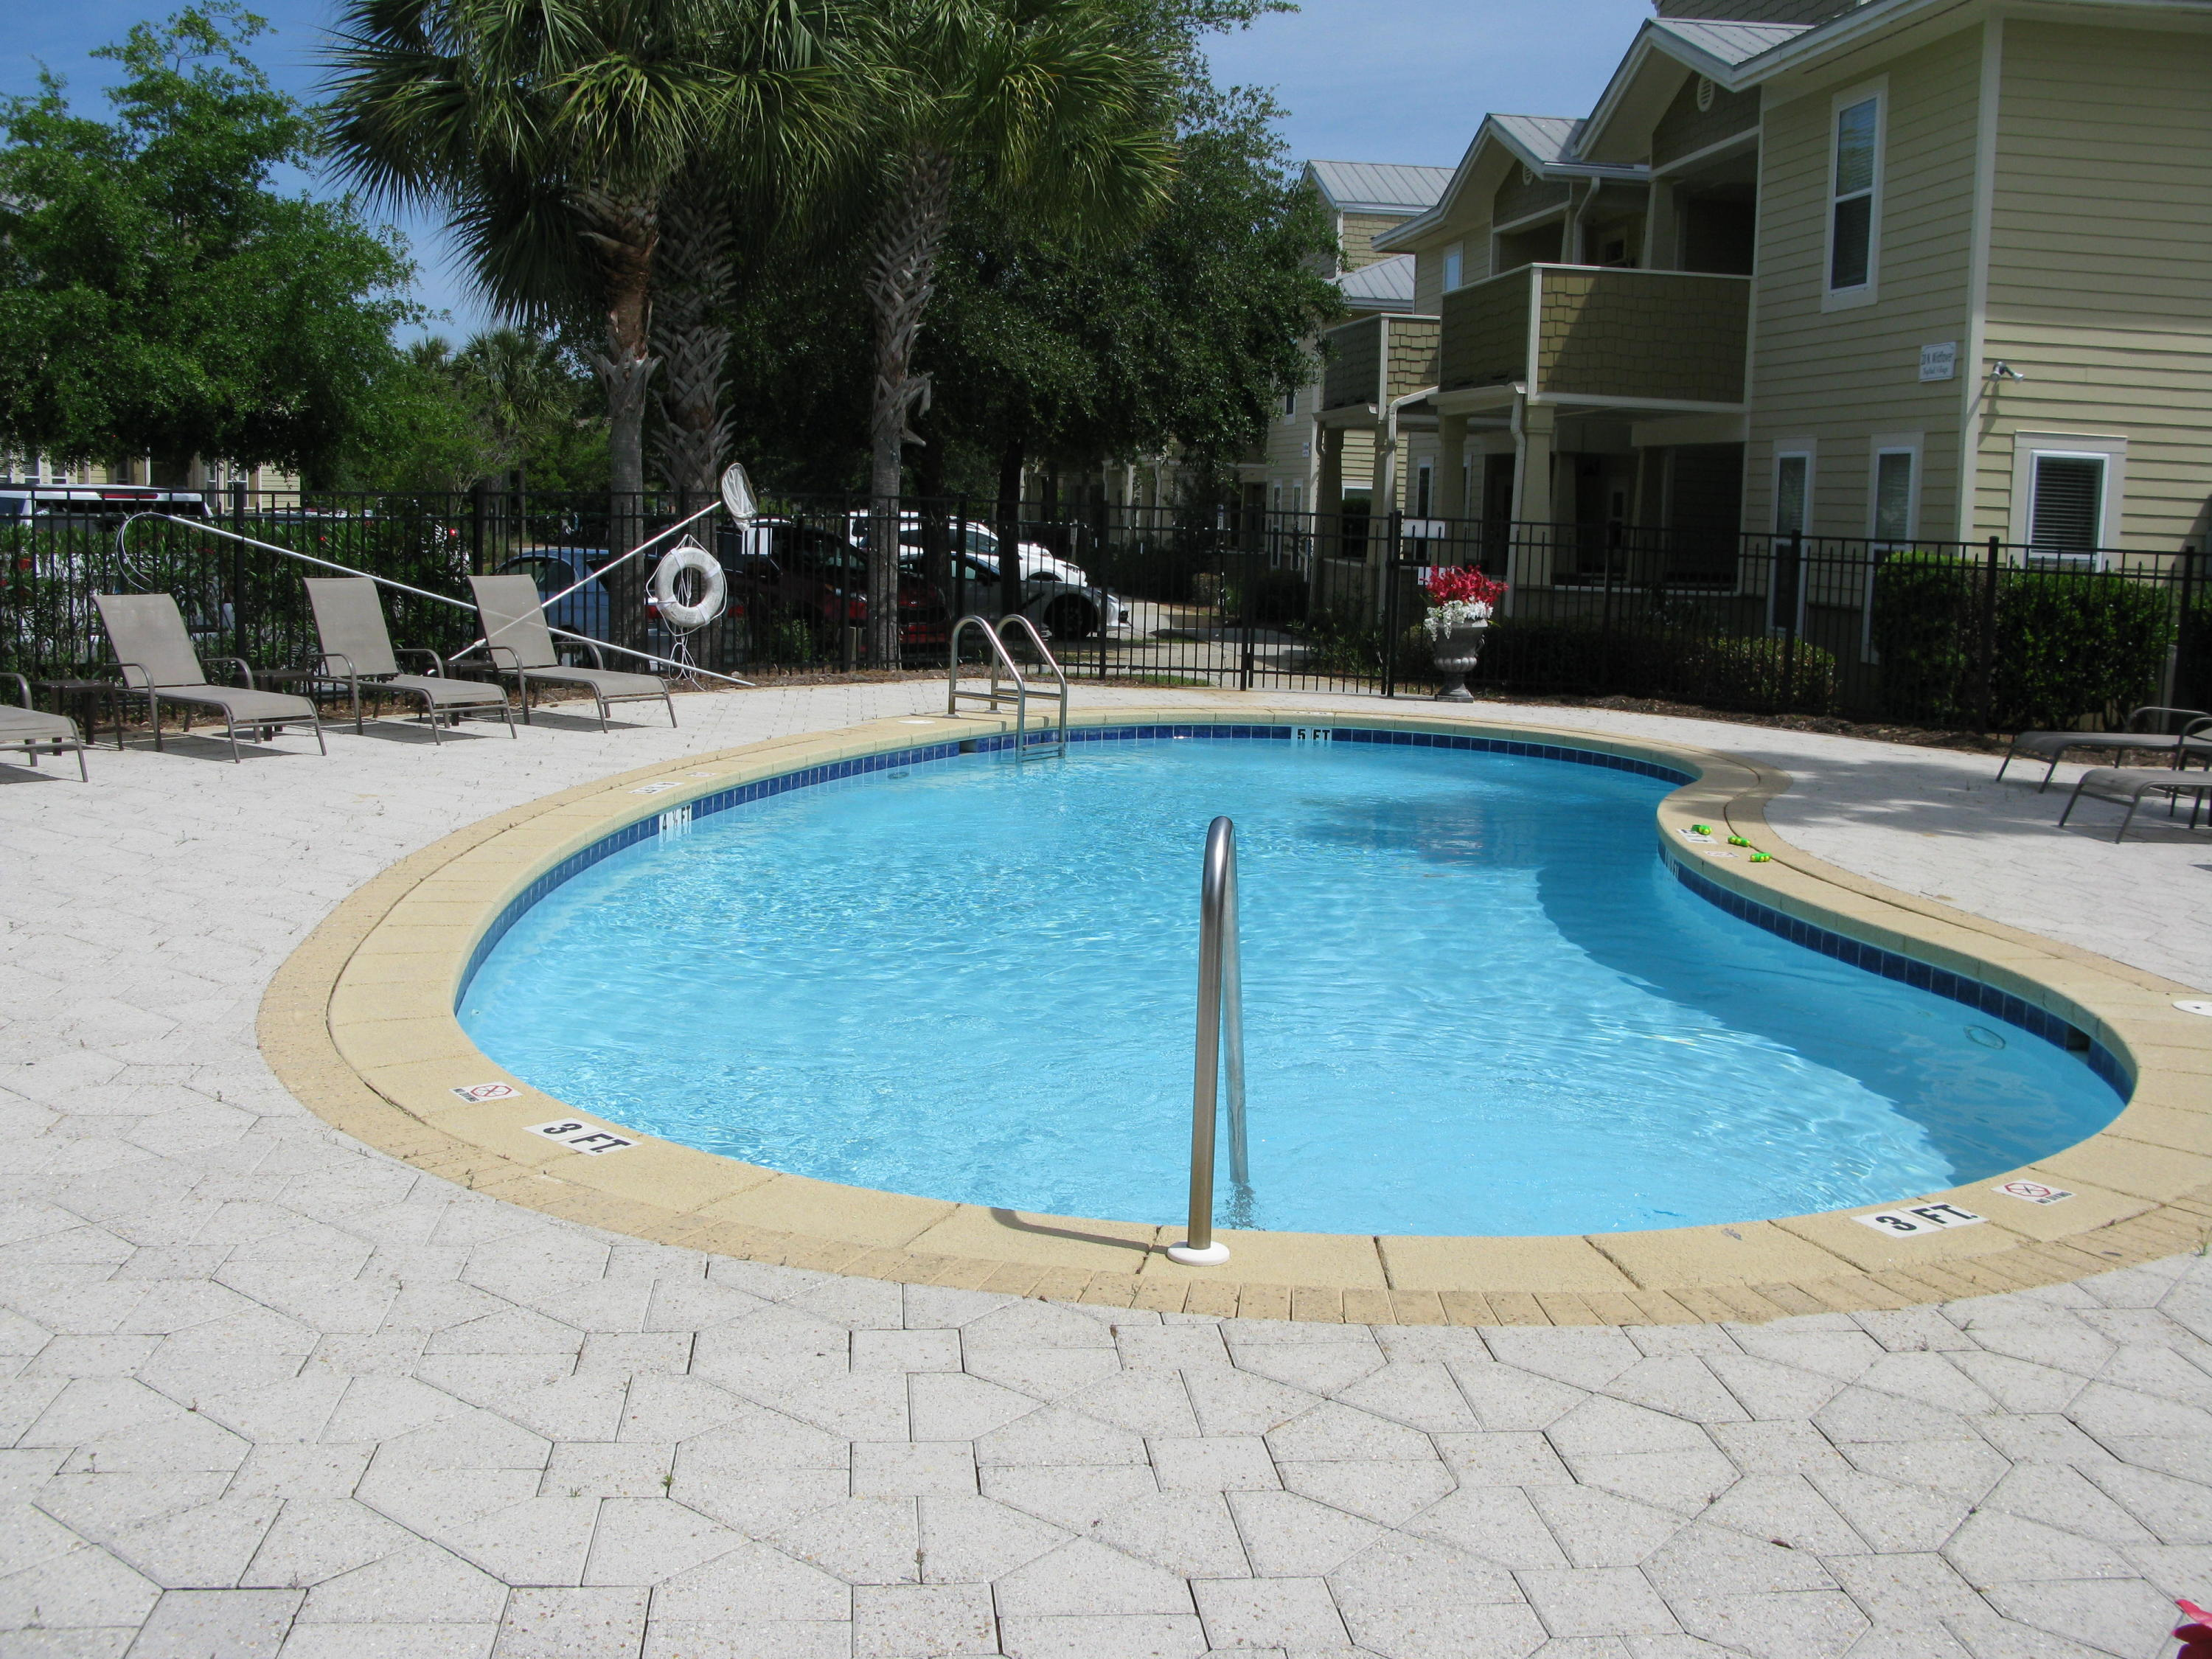 GORGEOUS FIRST FLOOR UNIT. TOTALLY REMODELED IN 2017. QUARTZ COUNTERTOPS, NEW APPLIANCES INCLUDING REFRIDGERATOR, STOVE, DISHWASHER, MICROWAVE AND WASHER AND DRYER. WALK IN SHOWER IN THE MASTER BATH. NEW CENTRAL AIR IN 2018. NEW TILE FLOORING. . THIS UNIT IS READY FOR YOU TO MOVE IN.NEST DOOR TO THE POOL ENJOY THE FRESH AIR ON YOUR GATED BALCONY..